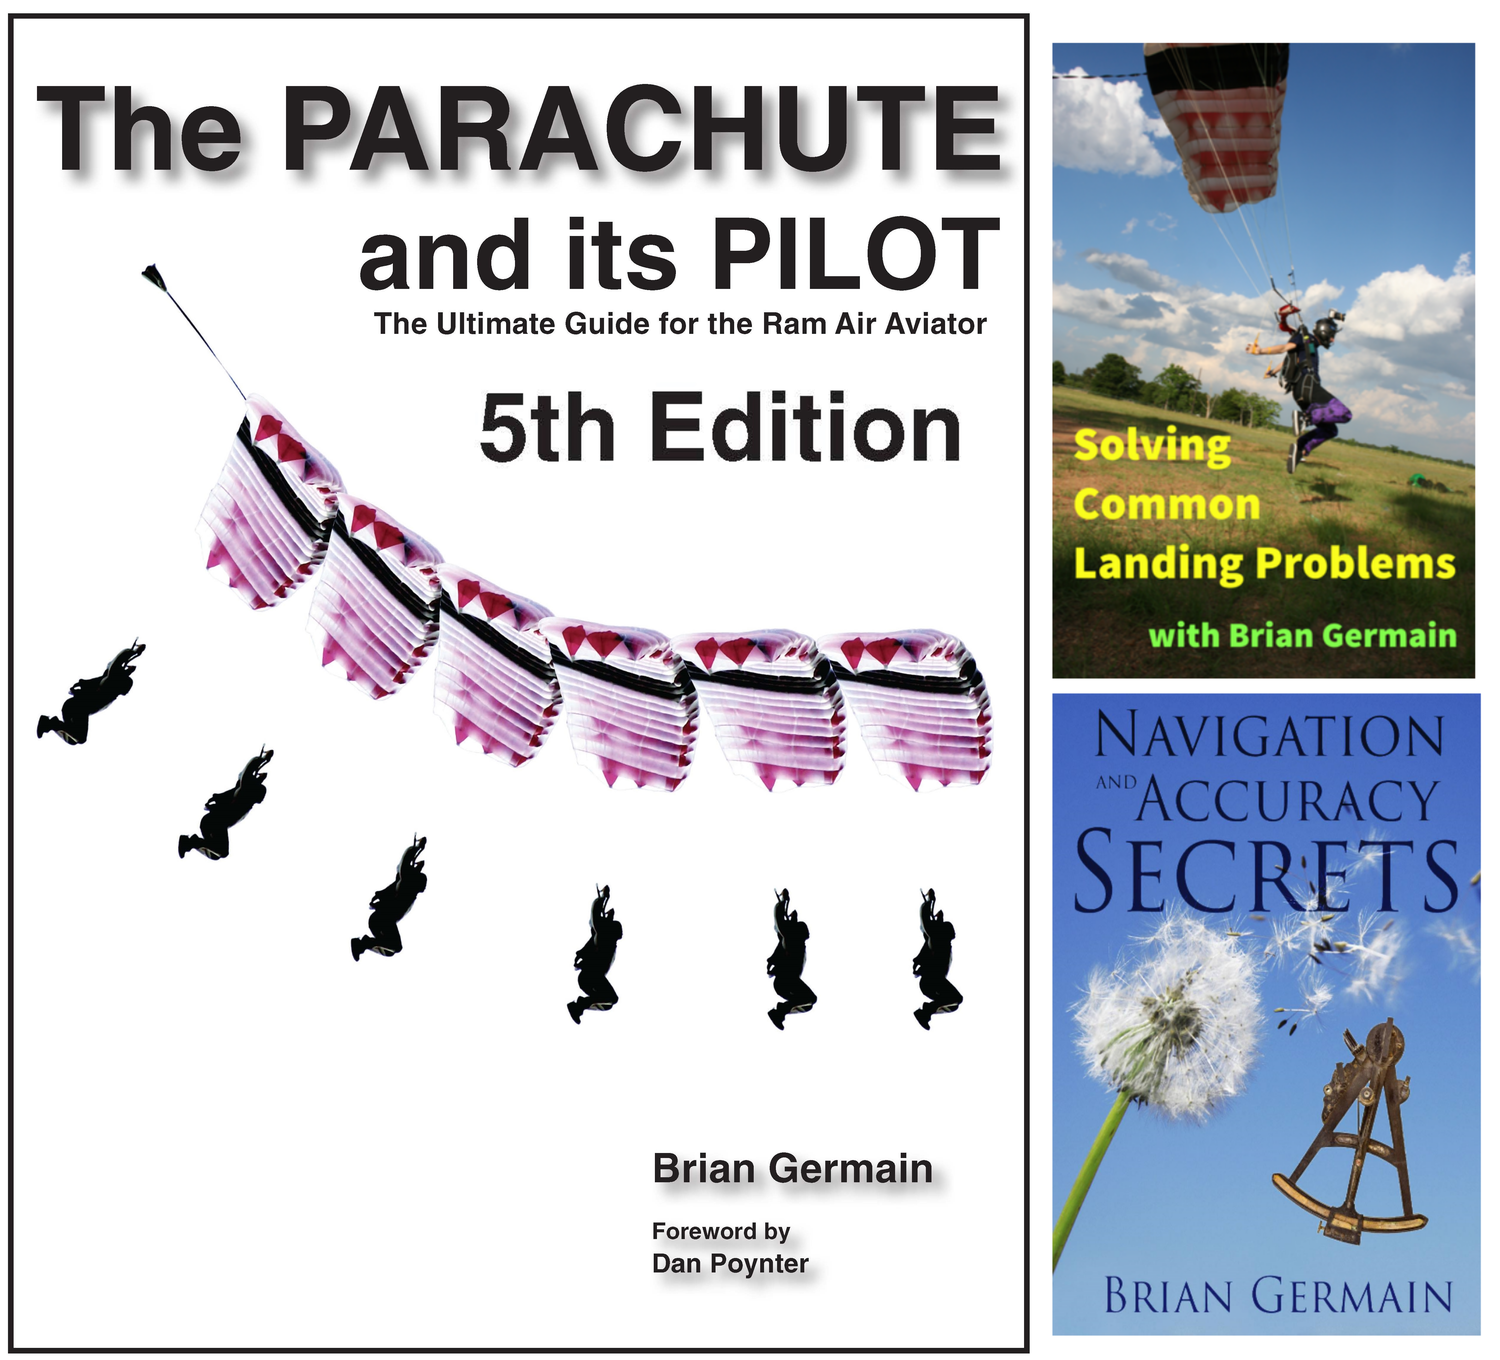 The Parachute and its Pilot 5th Edition, The Ultimate Guide for the Ram Air  Aviator